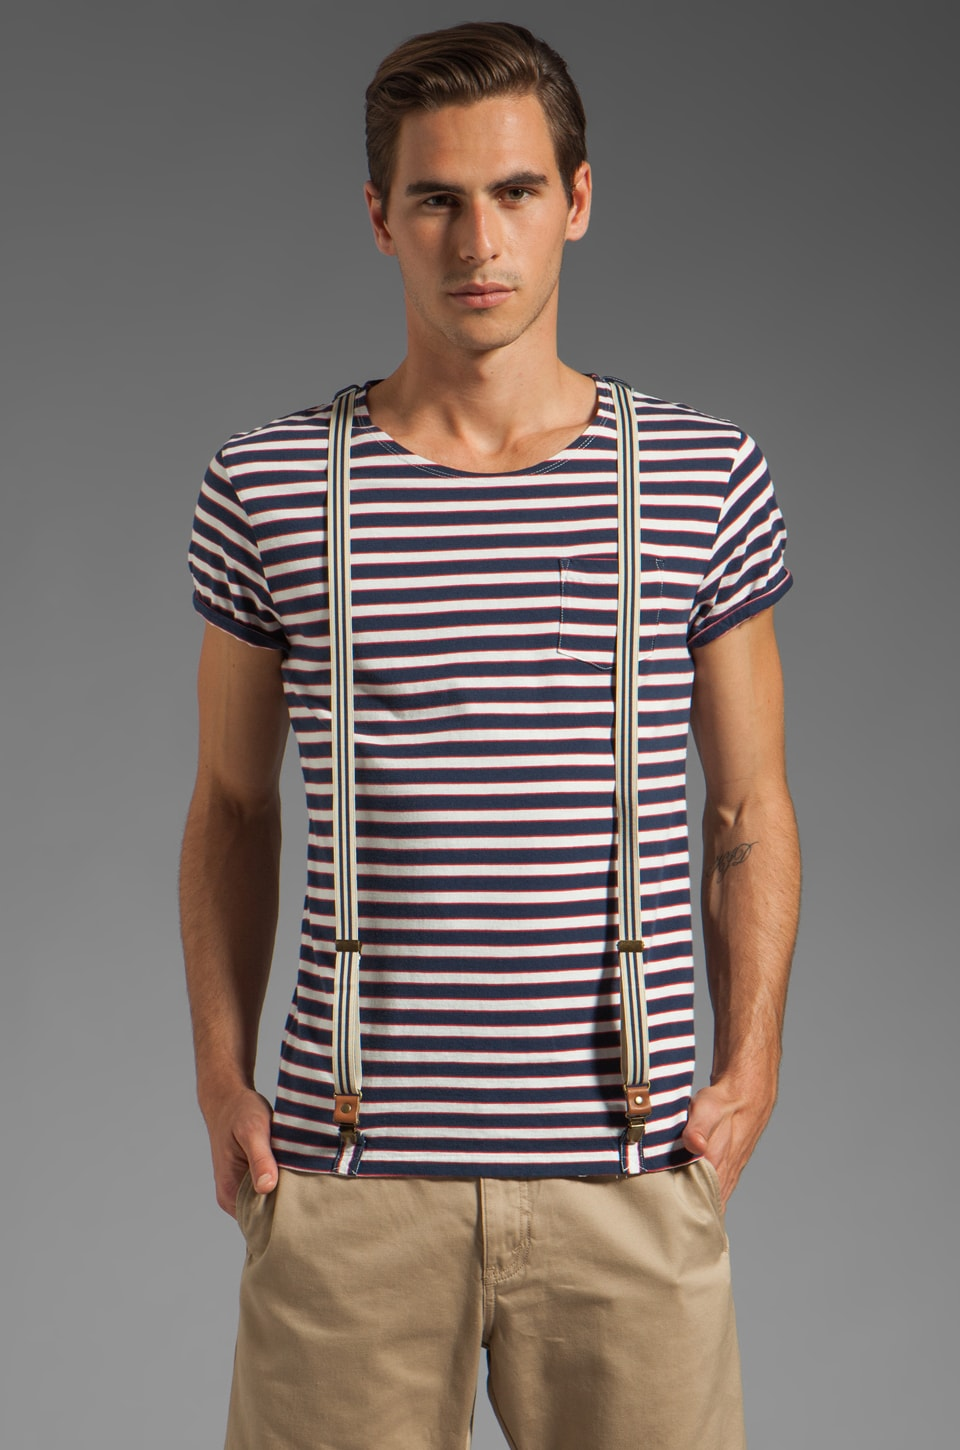 Scotch & Soda Suspender Tee in Navy